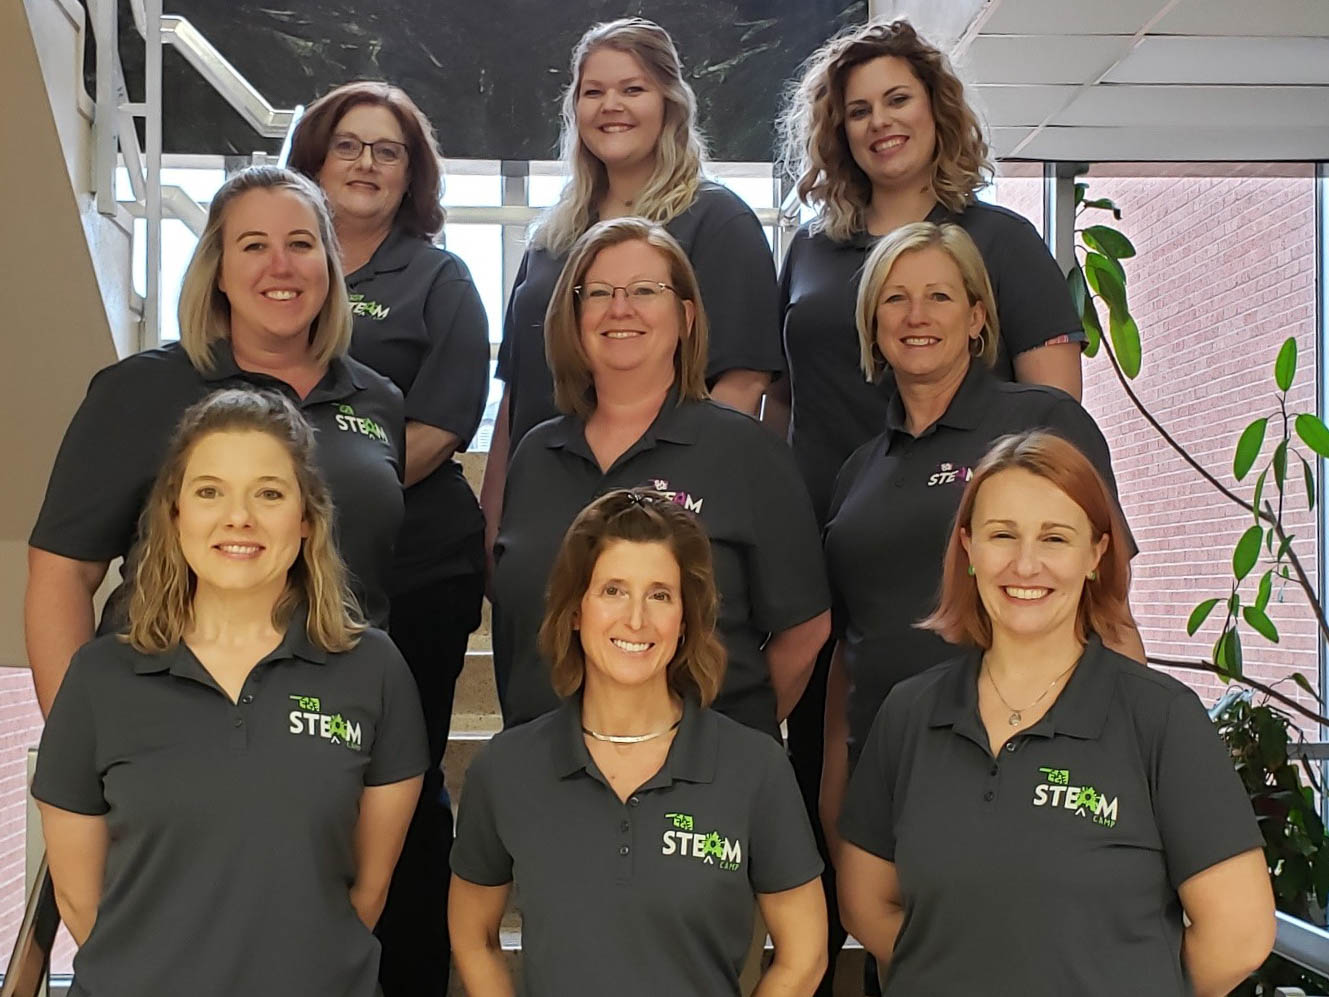 The 2020 SAGE STEAM Team – Left to right, bottom row: Mrs. Adina Foust (SWOSU College of Pharmacy), Dr. Lisa Appeddu (SWOSU College of Pharmacy), Dr. Denise Landrum-Geyer (SWOSU Language & Literature Department); middle row: Dr. Gina McGrane (SWOSU Department of Biological Sciences), Dr. Sally Drinnon (SWOSU College of Pharmacy), Dr. Sherri Brogdon (SWOSU Department of Education); top row: Mrs. Kathy O'Neal (SWOSU Department of Mathematics), Ms. Brianna Furman (SWOSU Chemistry major), Dr. Taylor Orgeron (SWOSU Language & Literature Department).  Not shown: Dr. Lori Gwyn (Director, SWOSU Office of Sponsored Programs and Student Success Center), Mrs. Kristin Flaming (NSF Grant Research Associate), Mrs. Elizabeth Amen (Burcham Elementary School), Ms. Jennifer Abshire (SWOSU Microbiology major), and Ms. Jillian Drinnon (SWOSU English Education major).